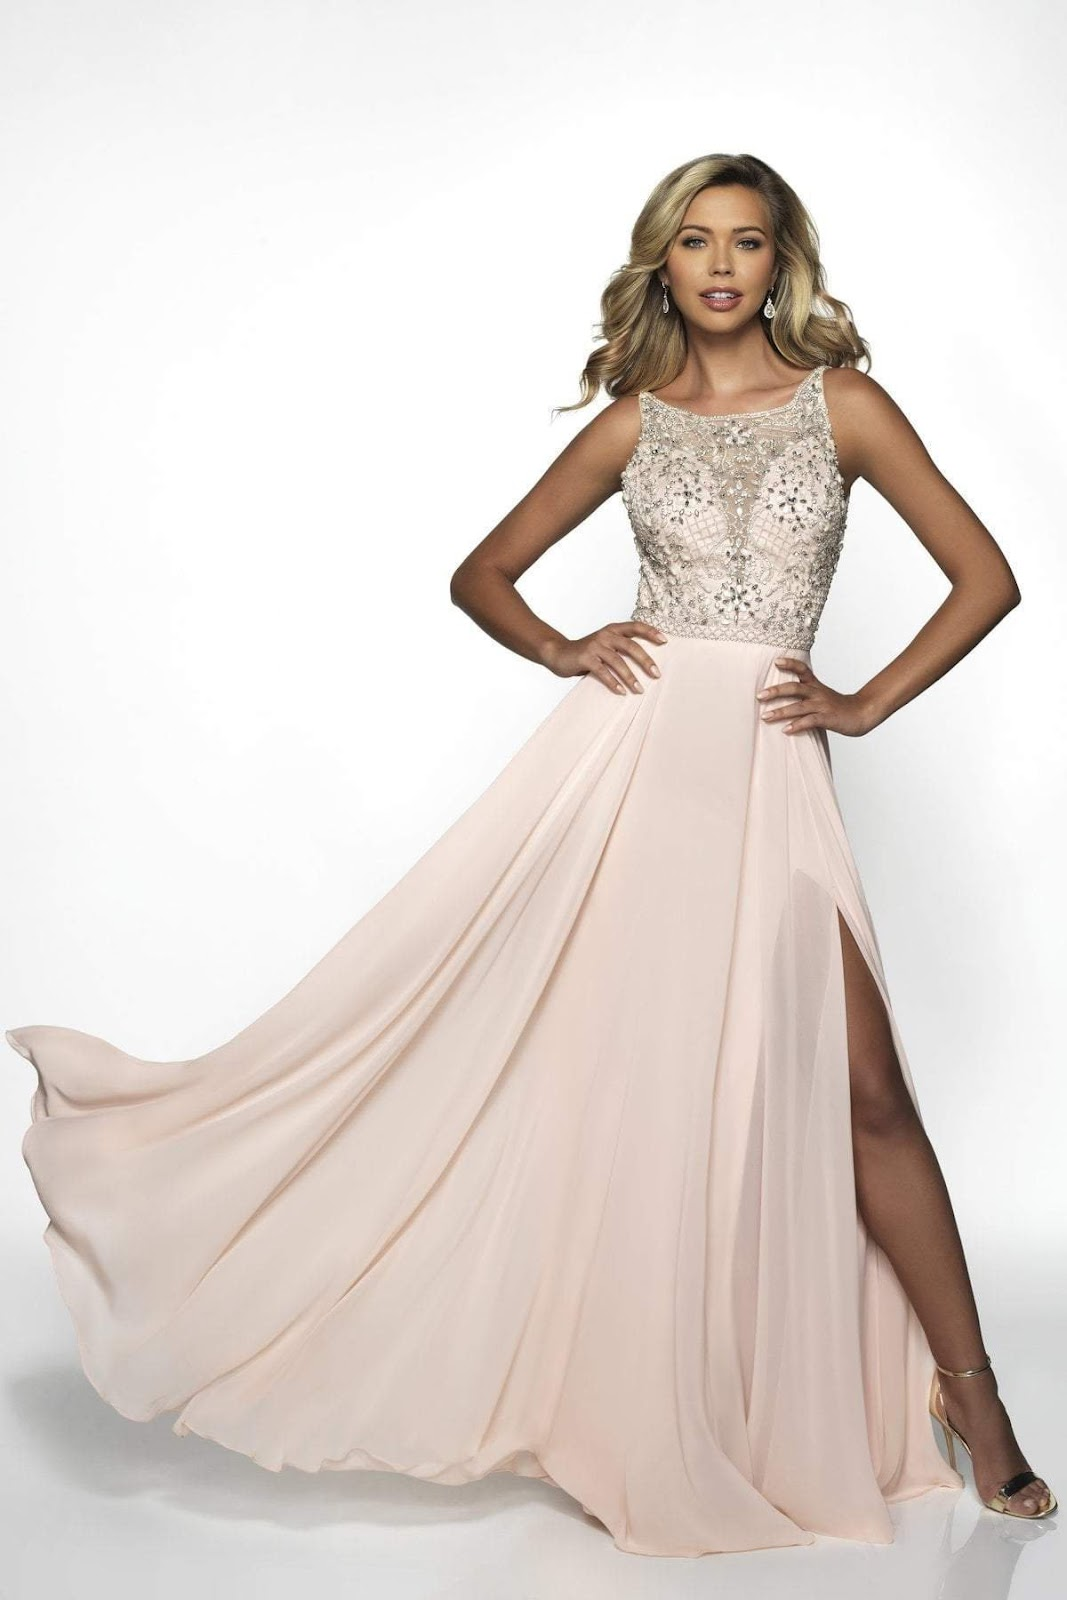 BLUSH BY ALEXIA DESIGNS - BEADED A-LINE EVENING GOWN C2081SC